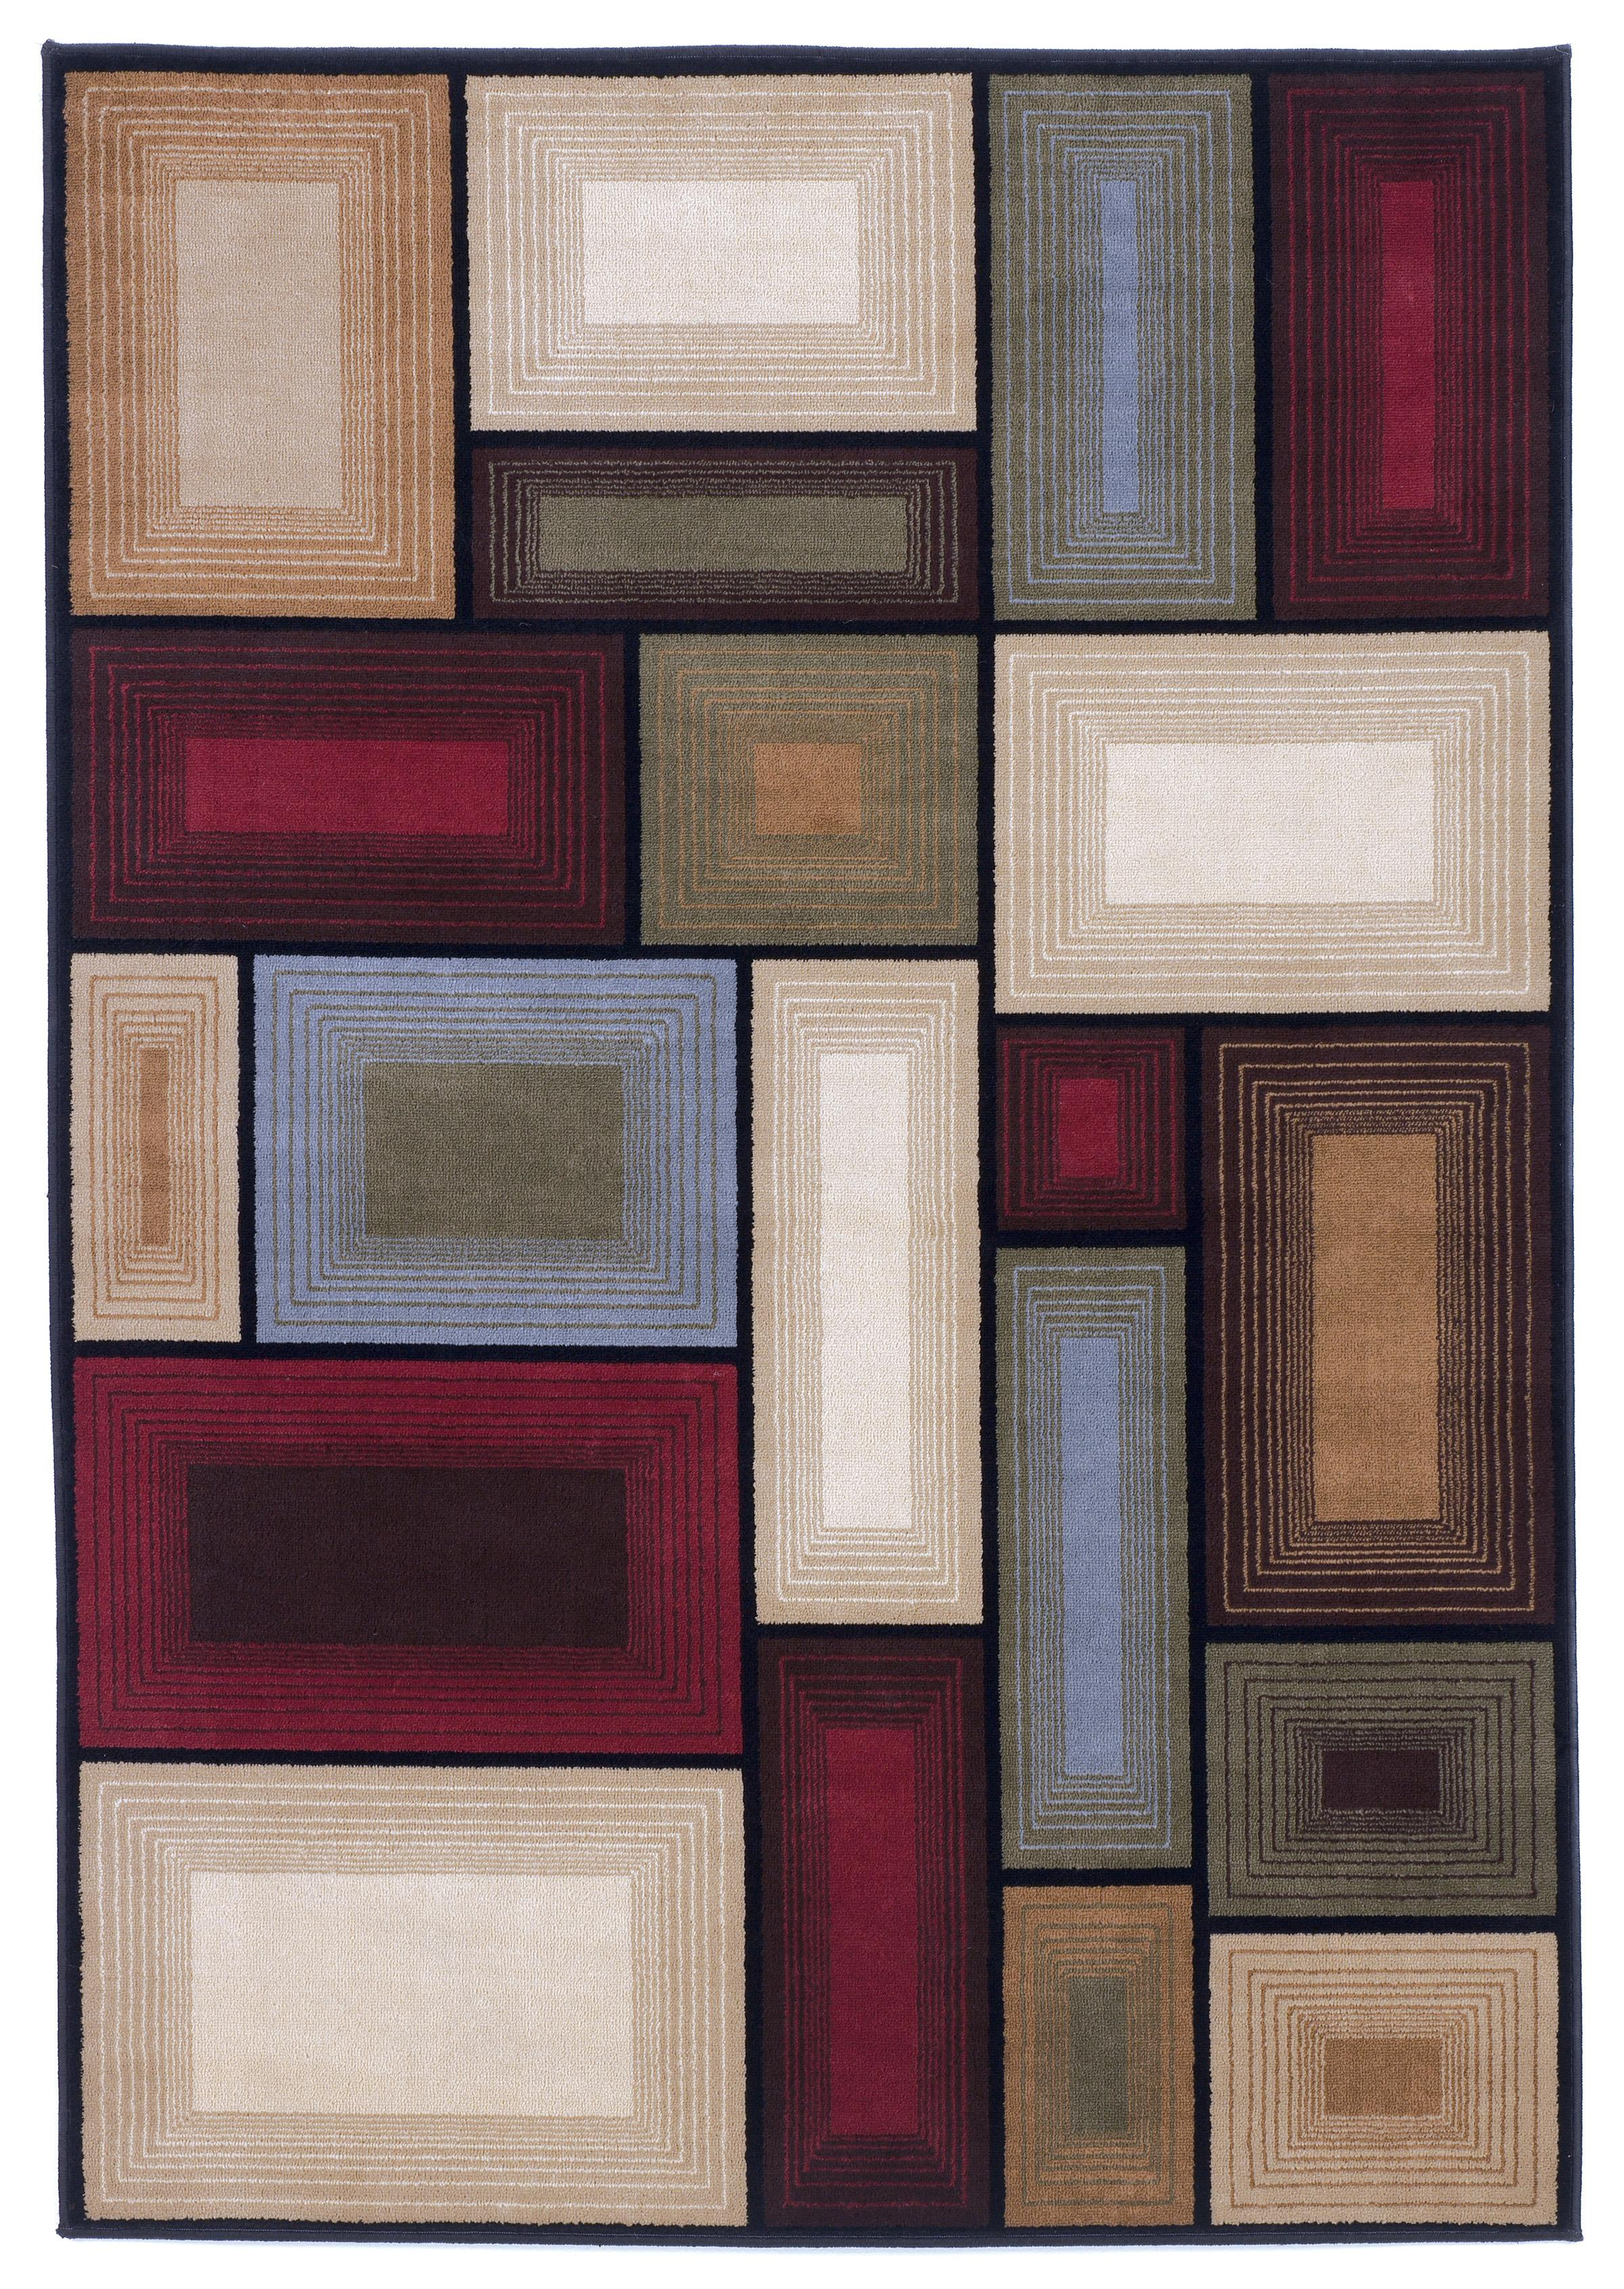 Contemporary Area Rugs Prism - Multi Rug by Signature Design by Ashley at HomeWorld Furniture